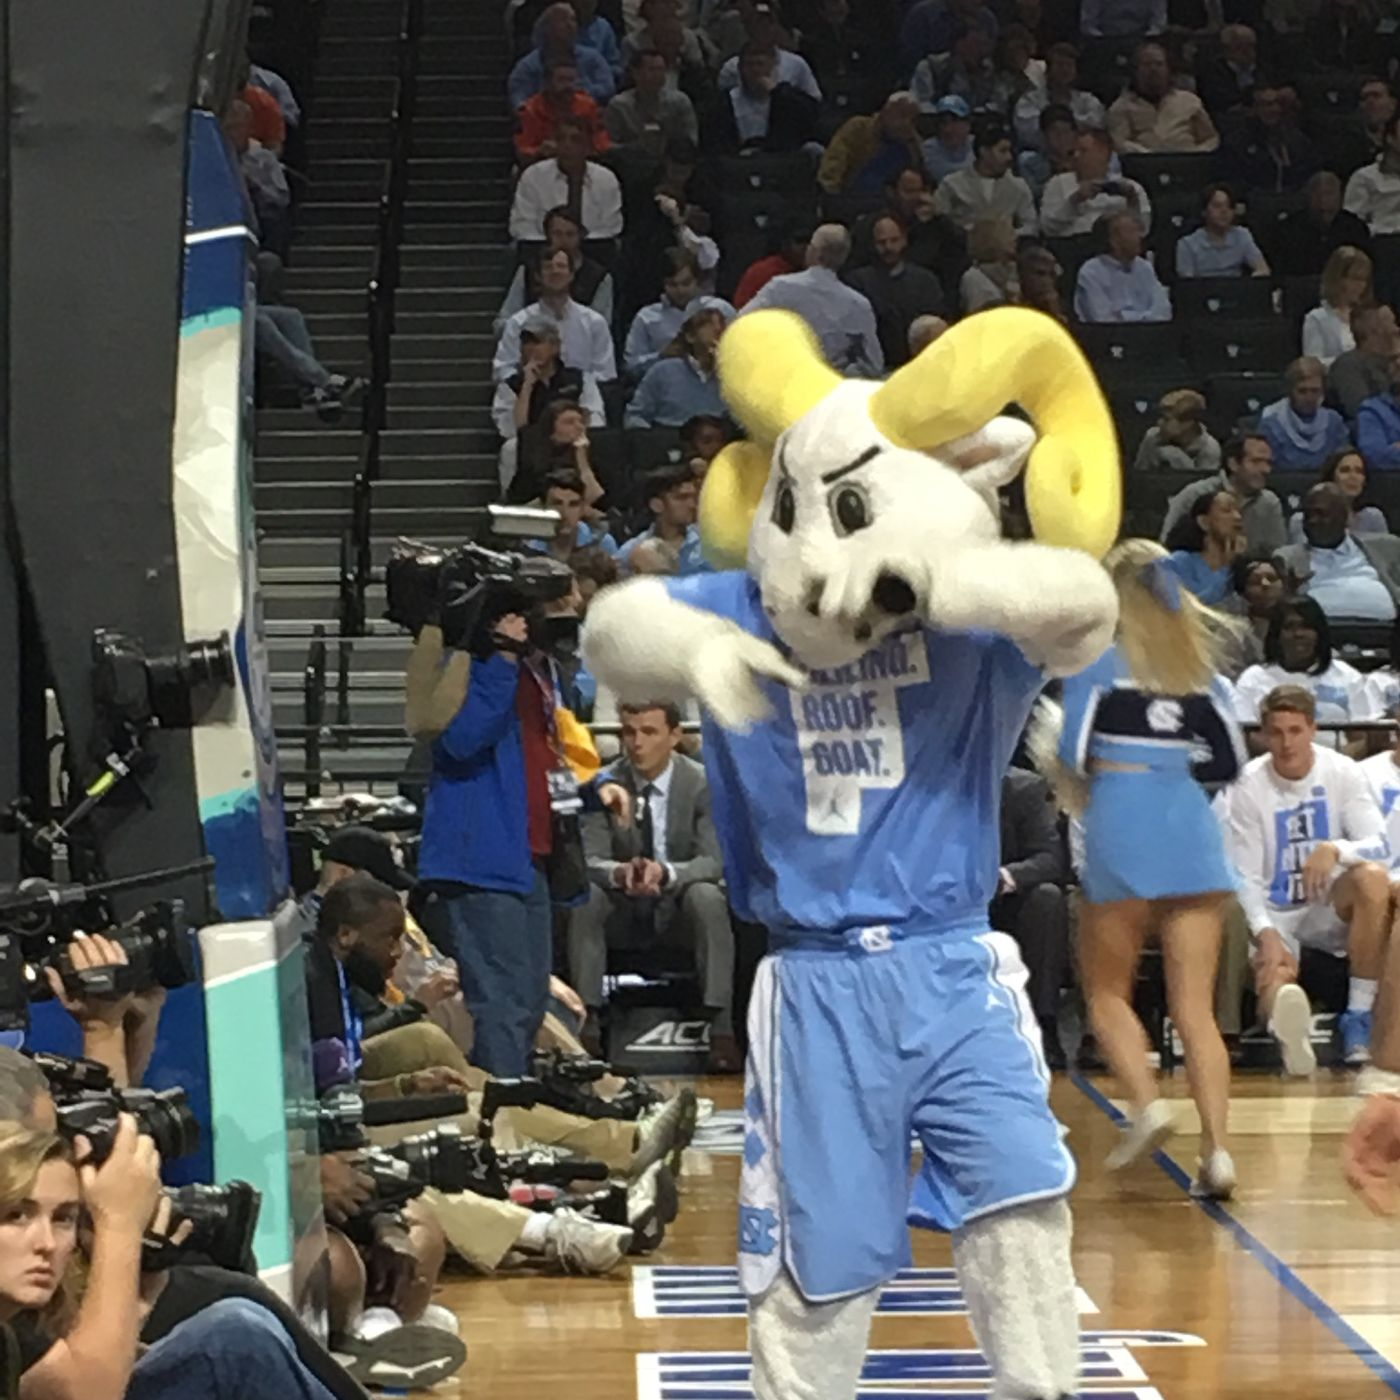 0cd4770cd1fb26 UNC s band and mascot are wearing shirts that say  CEILING. ROOF. GOAT.